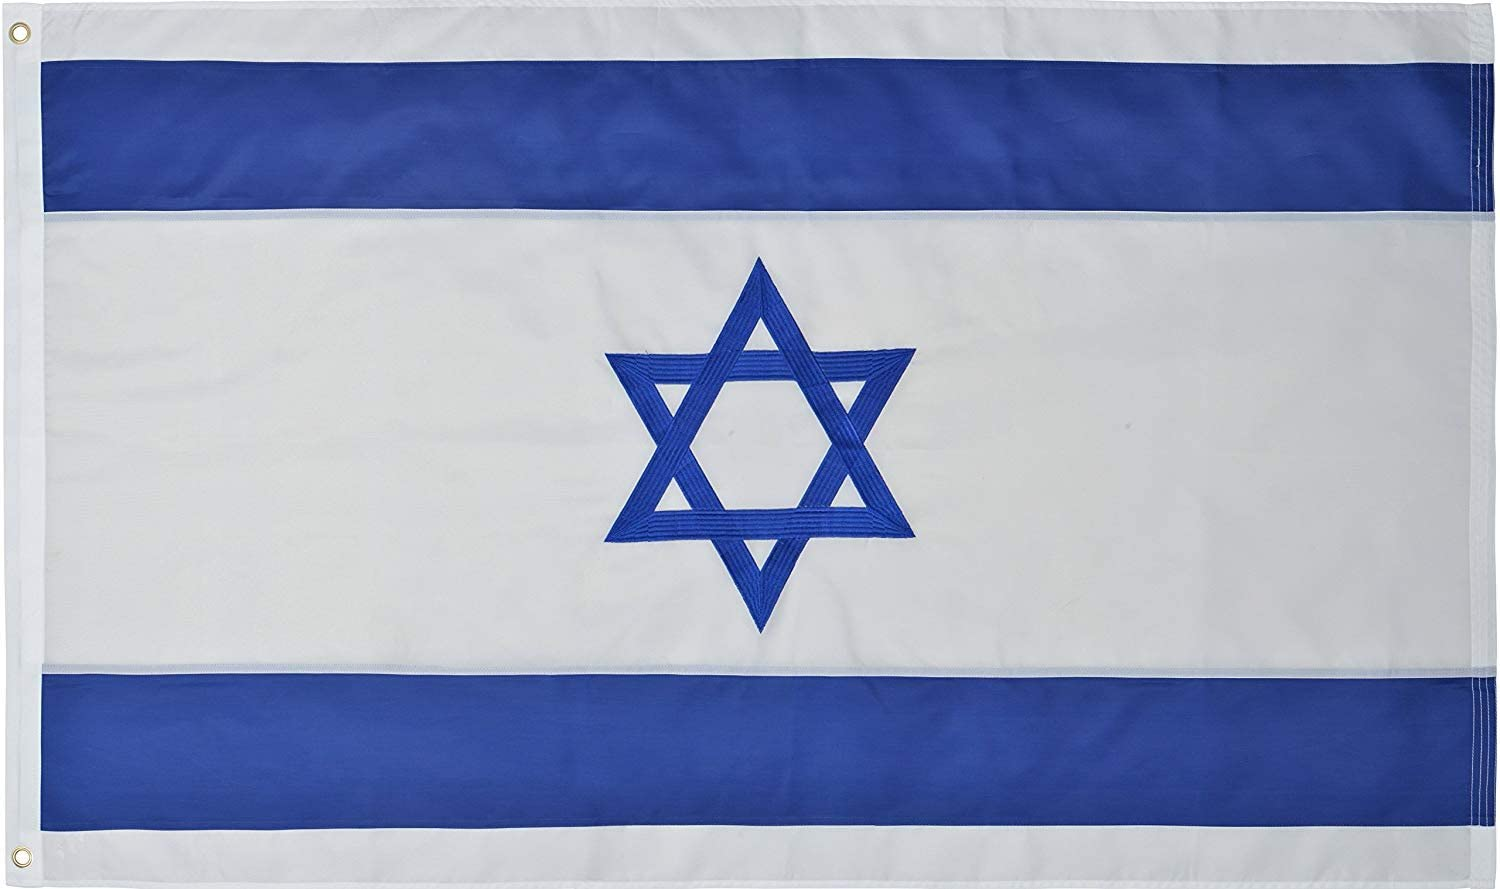 Green Same day shipping Grove Products Israel Flag 2' x 3' O 210D Premium Nylon Direct sale of manufacturer Ft